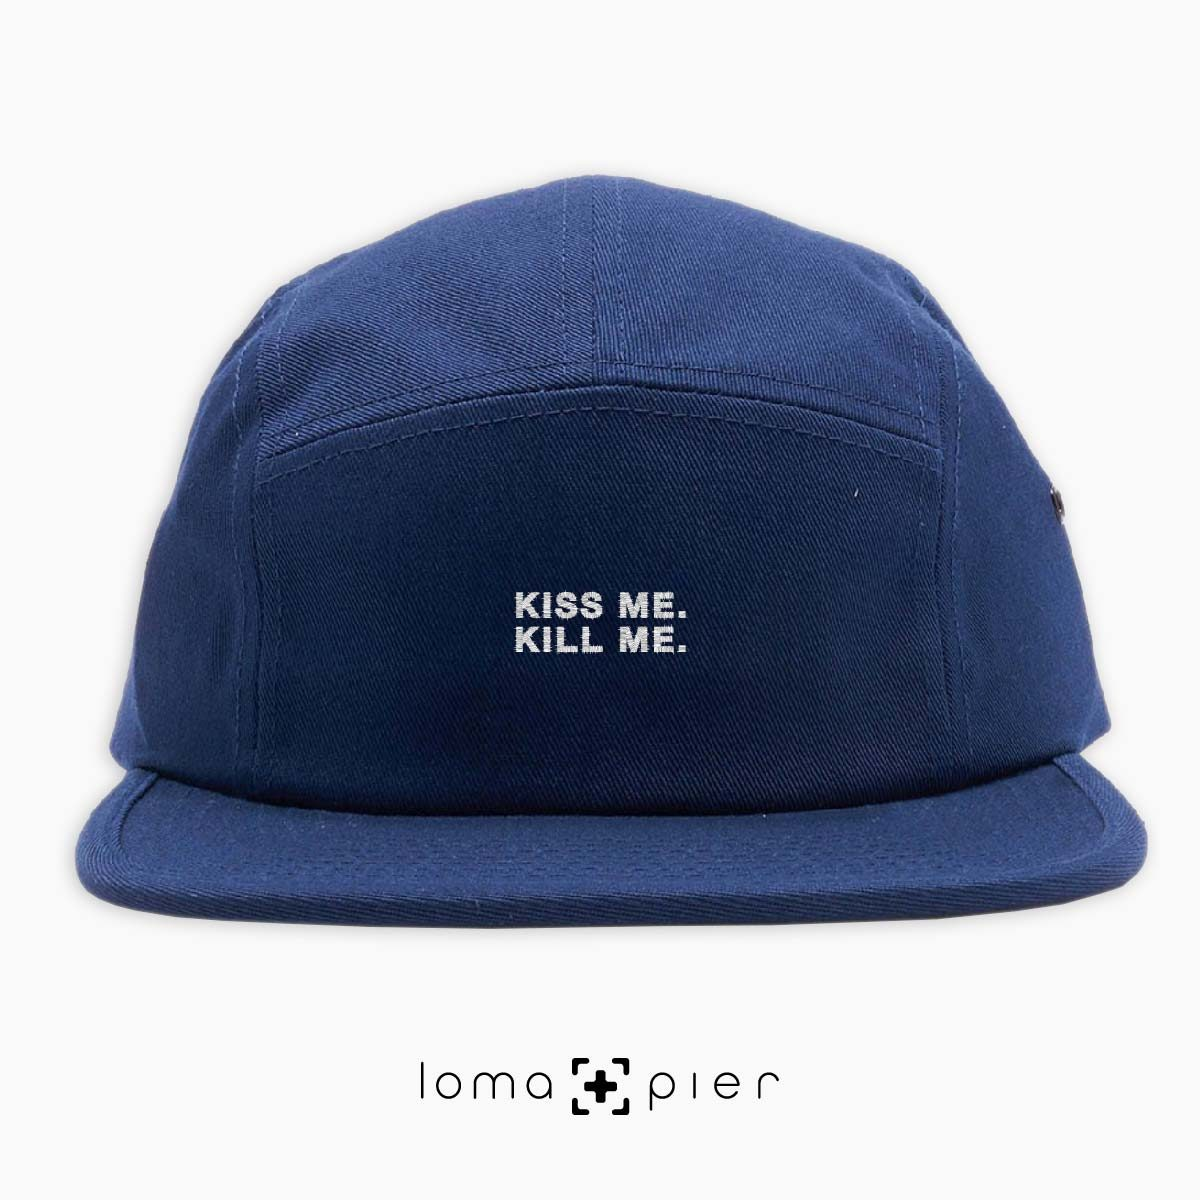 KISS ME. KILL ME. typography embroidered on a navy blue cotton 5-panel hat with white thread by loma+pier hat store